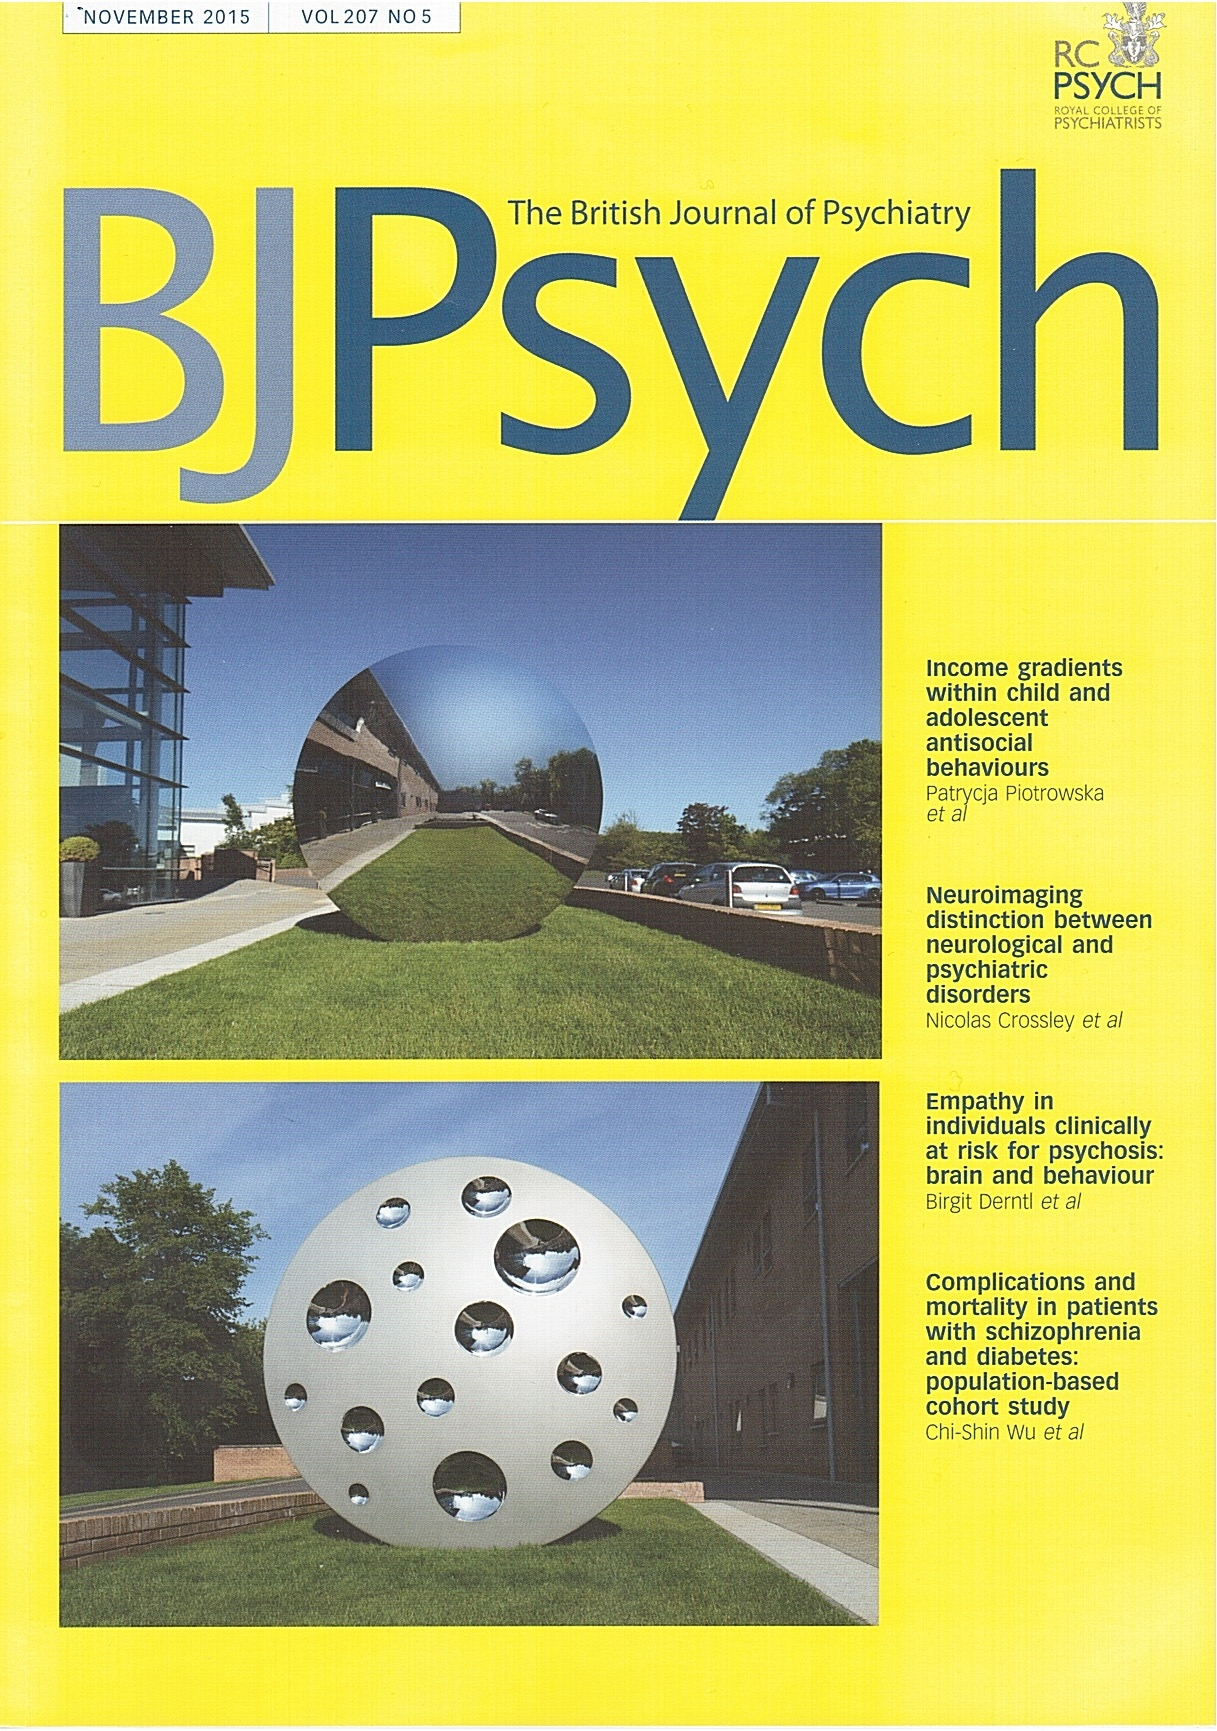 The British Journal of Psychiatry - November 2015 cover